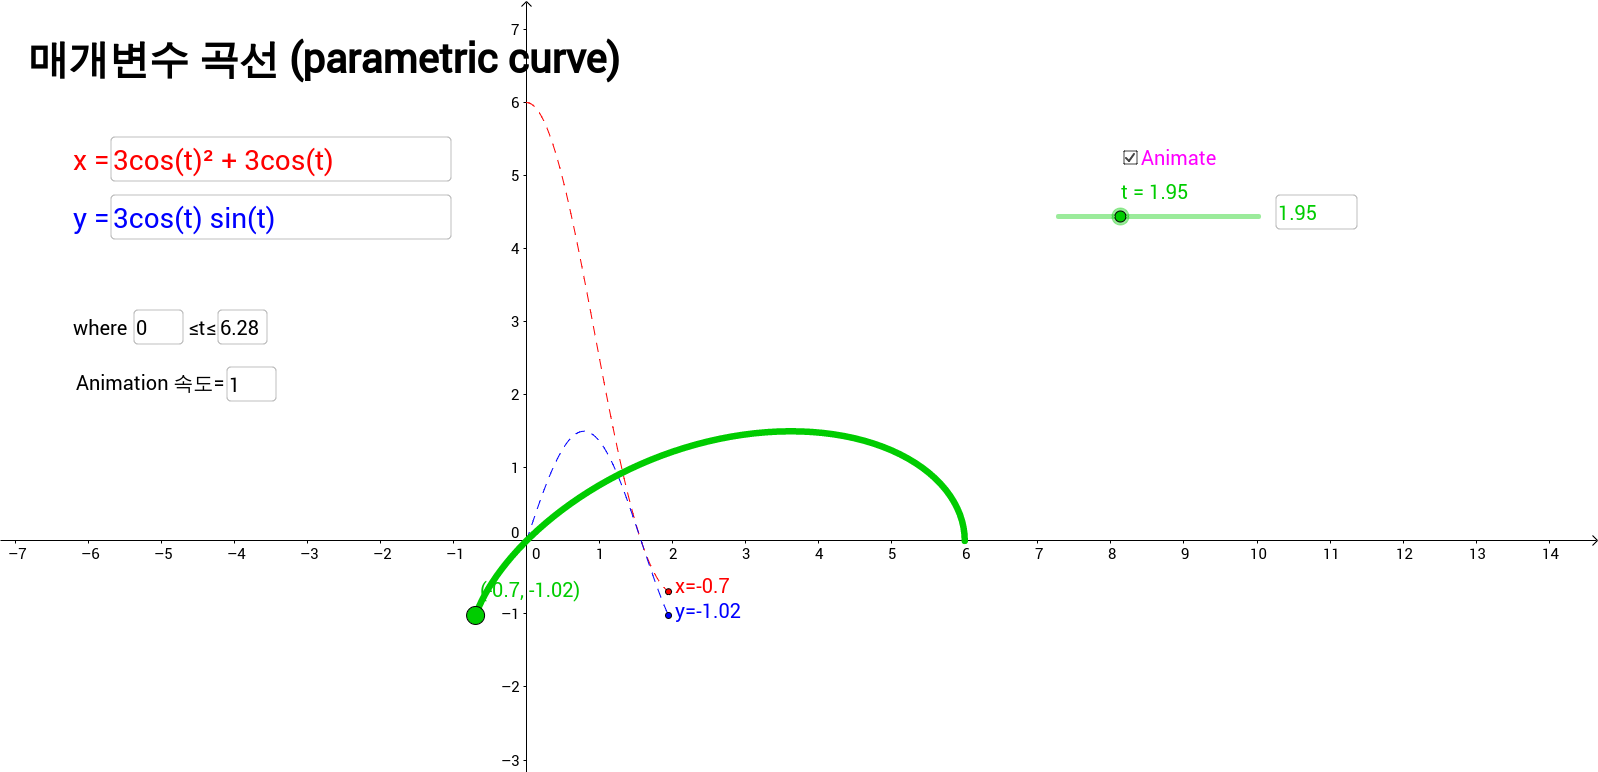 Graphing Parametric Curves